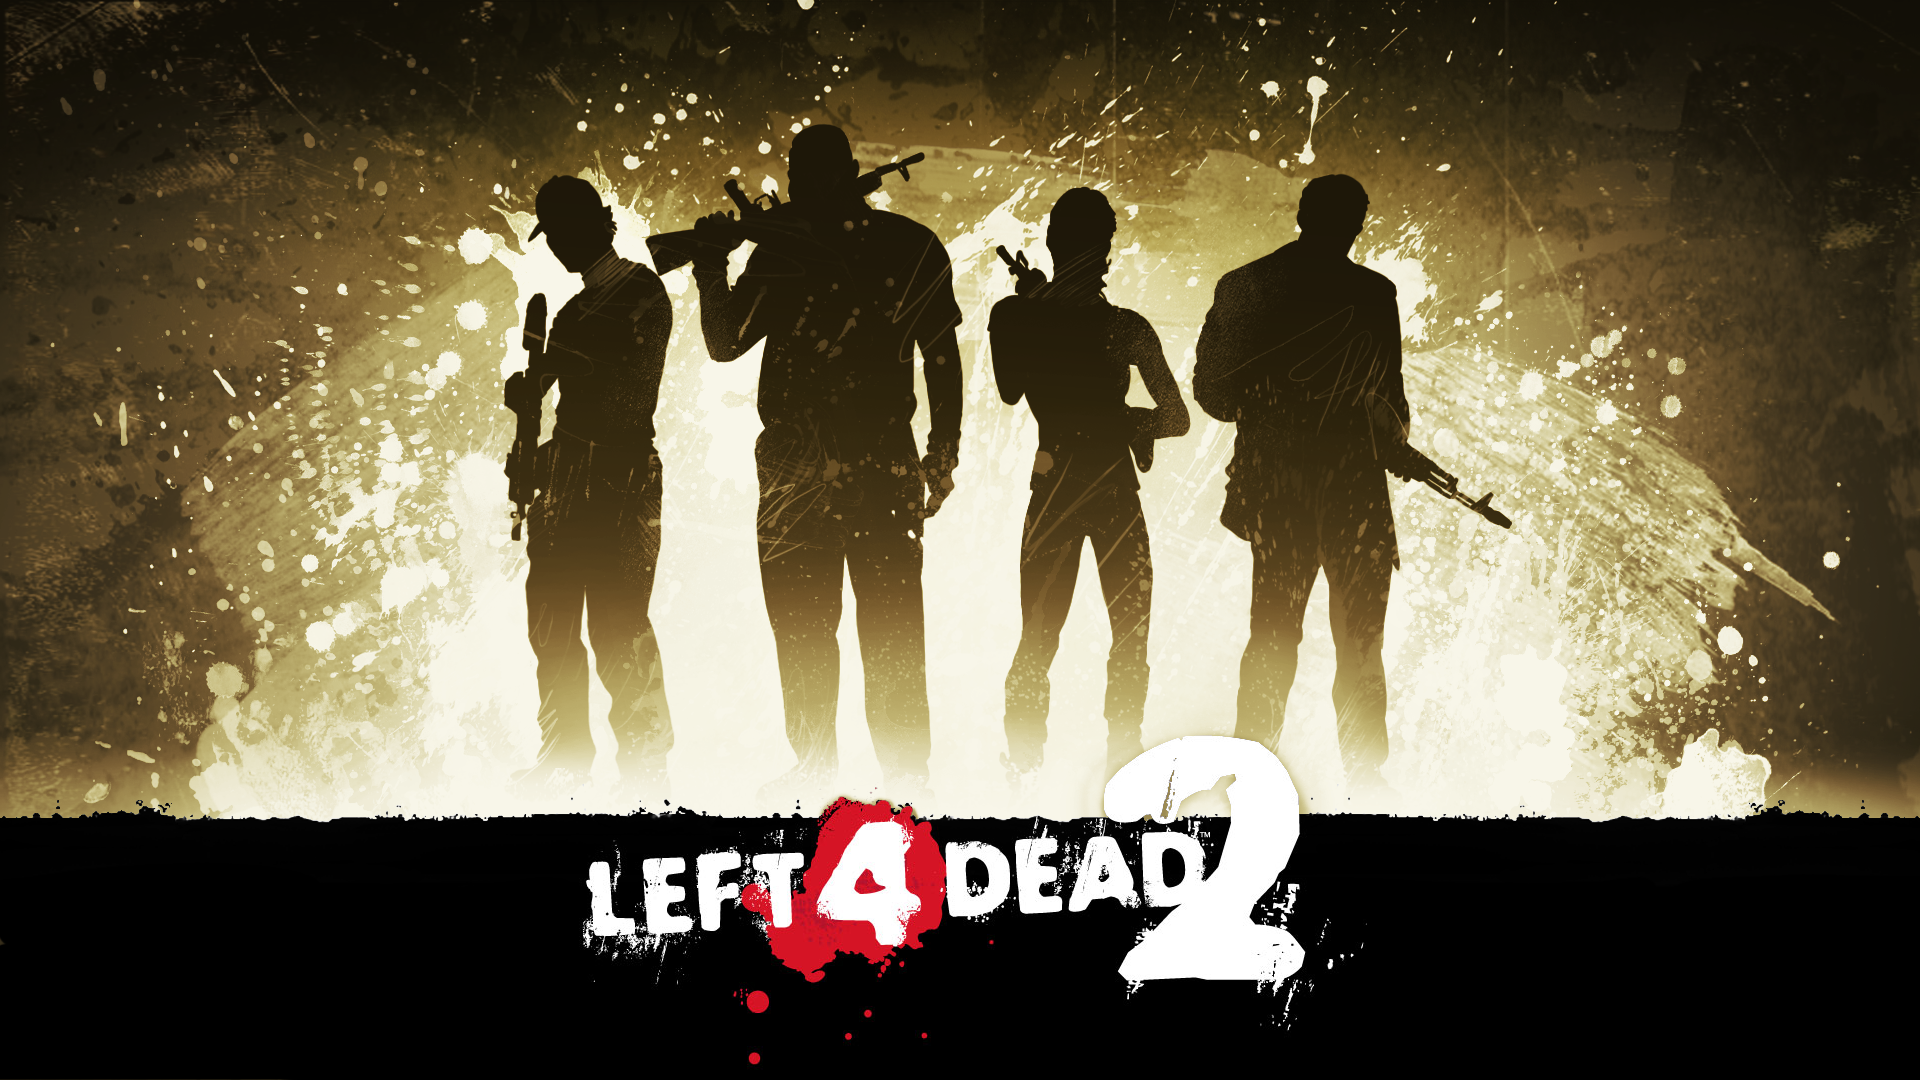 ... Left 4 Dead 2 by Xtermination